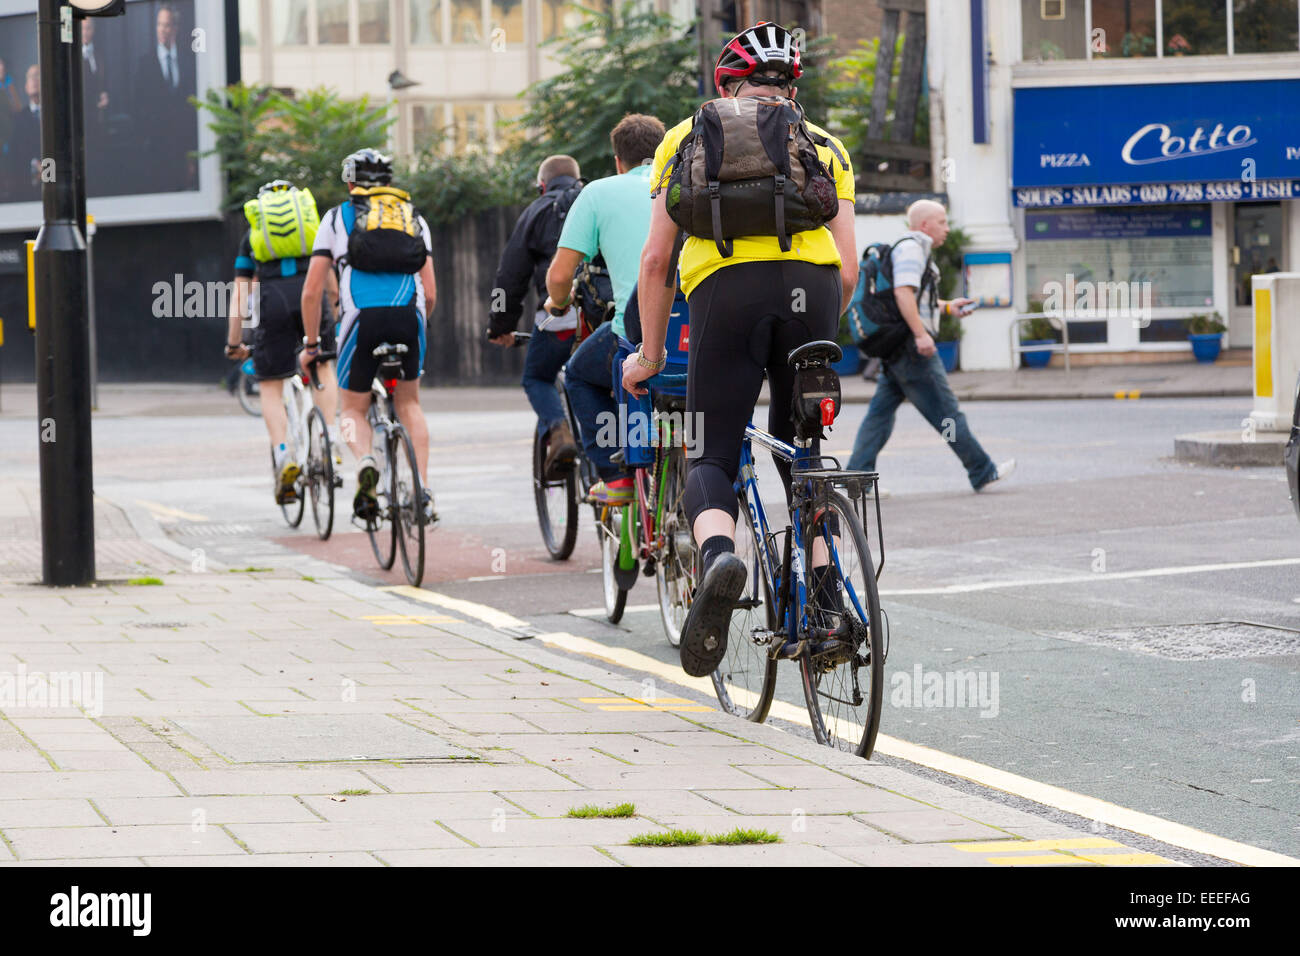 Cyclists using a cycle lane on Bayliss Road - Stock Image